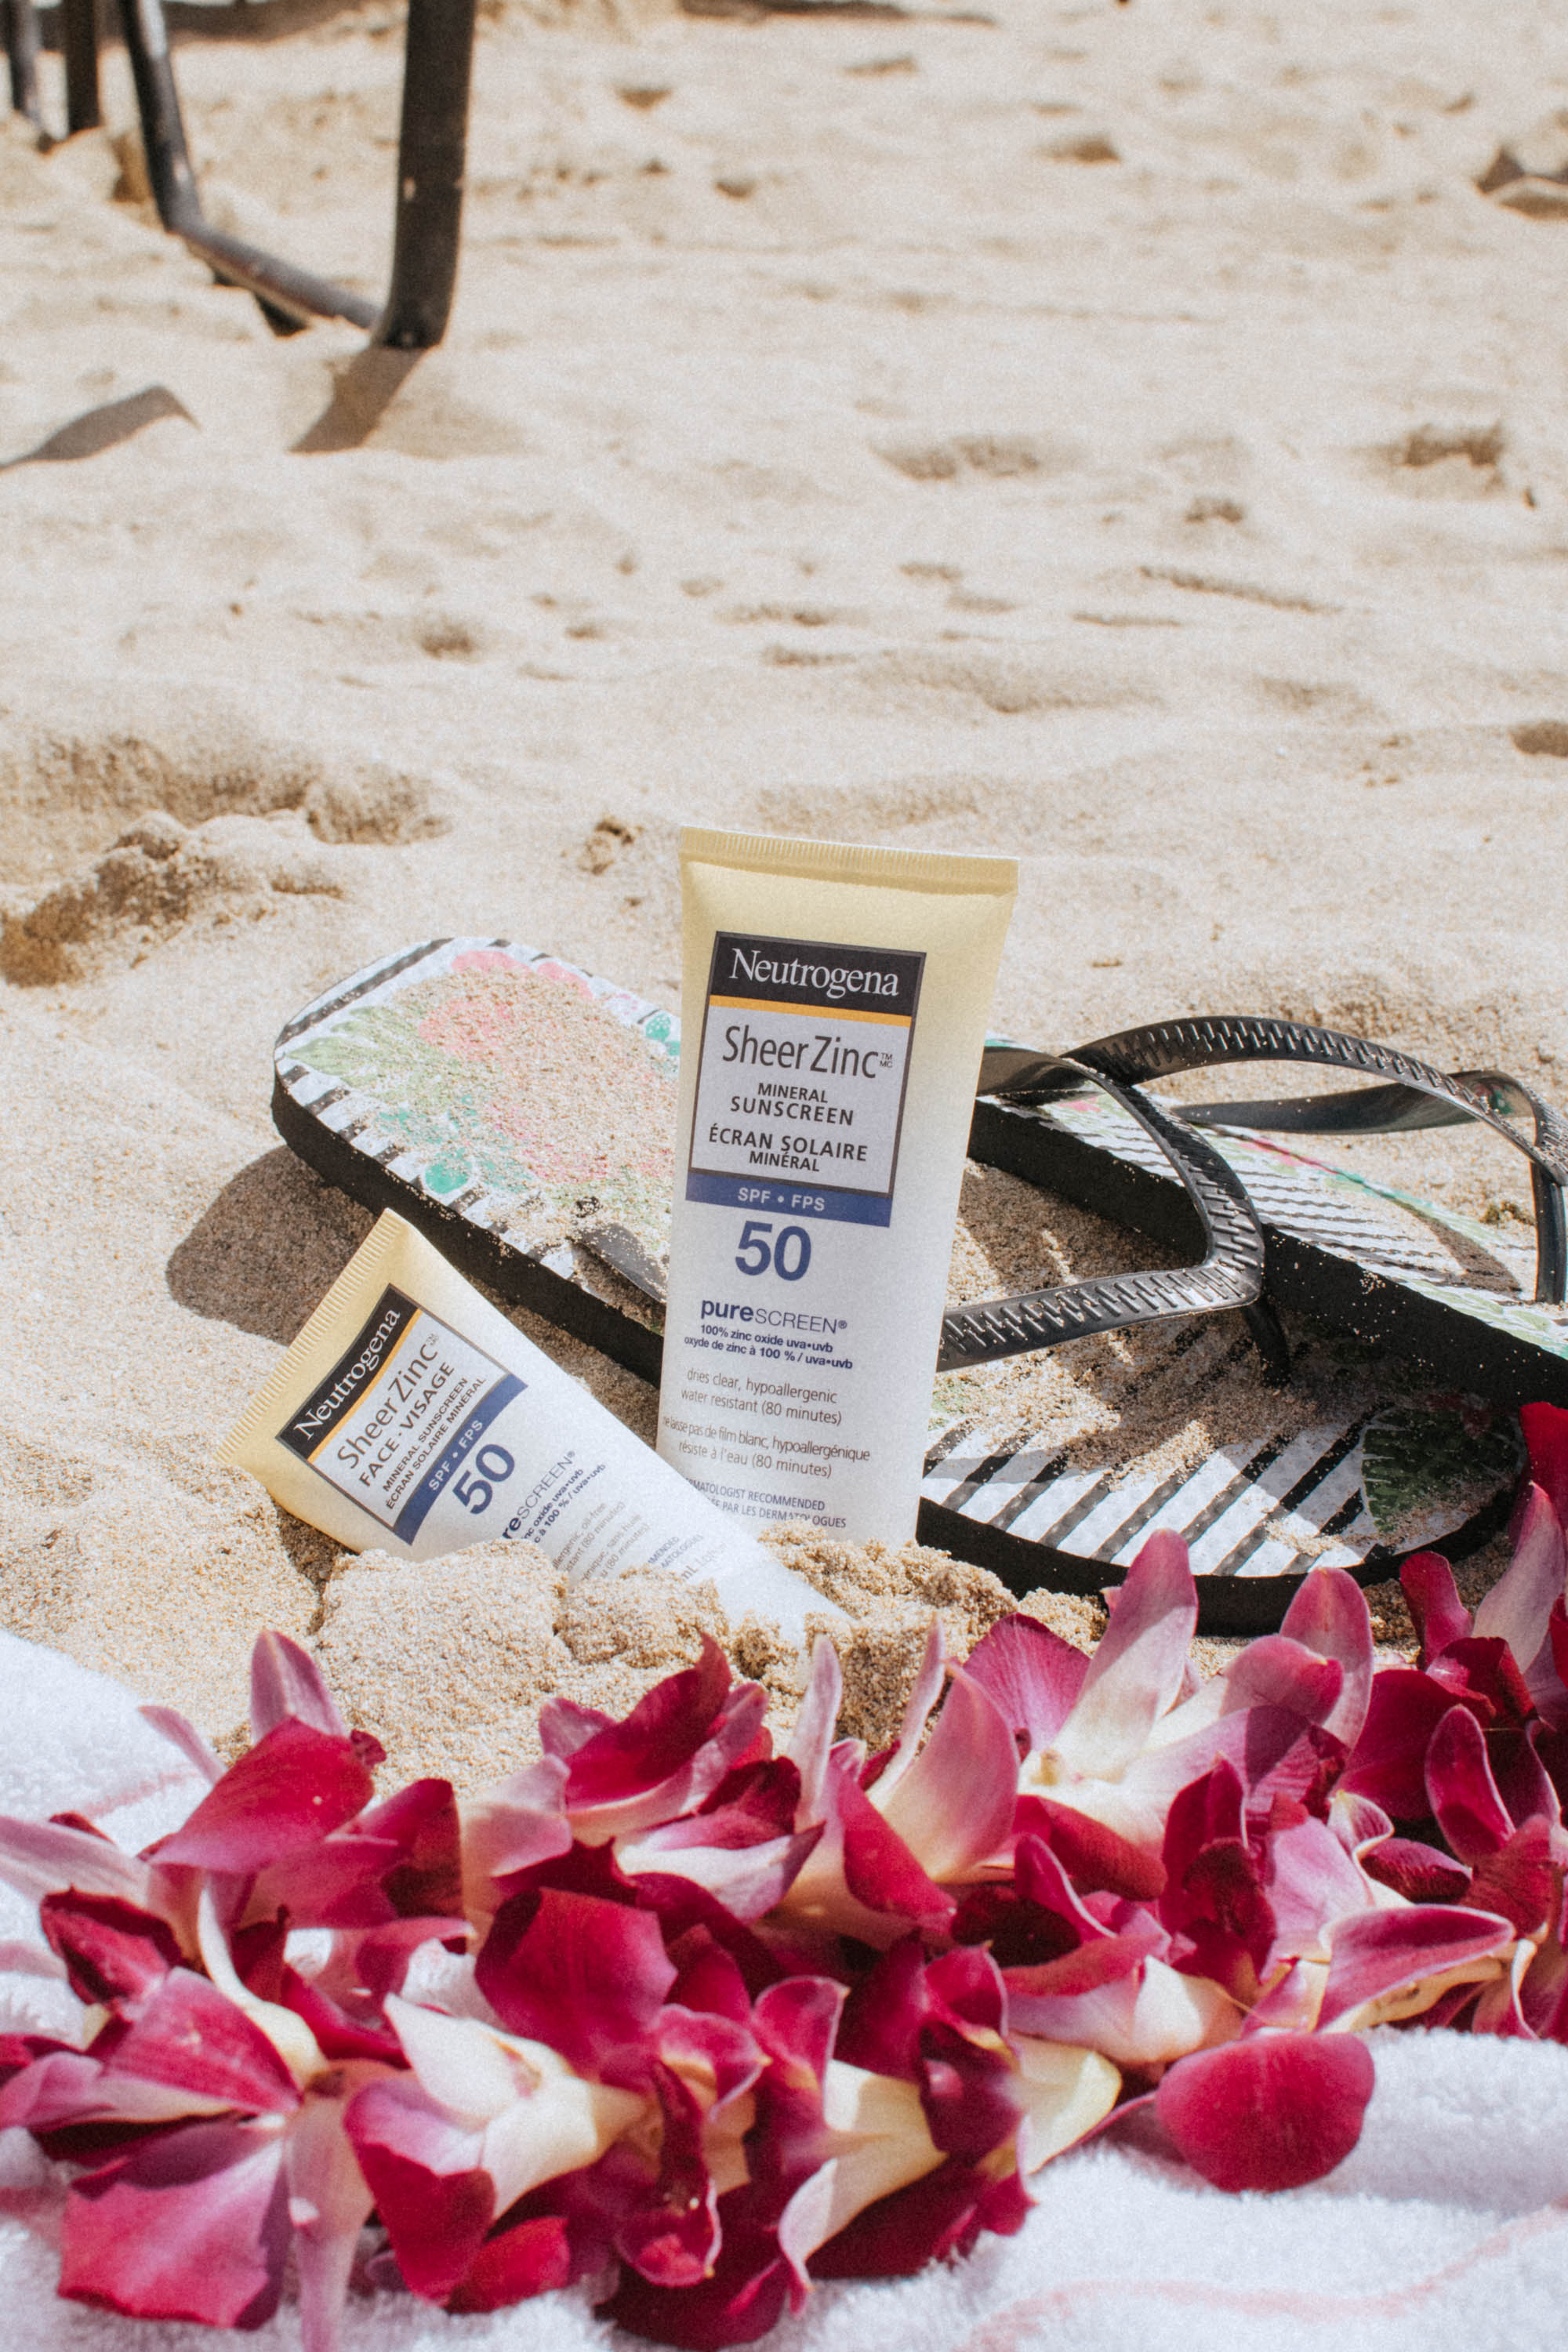 Displaying my favourite Neutrogena Sheer Zinc Mineral Sunscreen for Face and Body by the beach